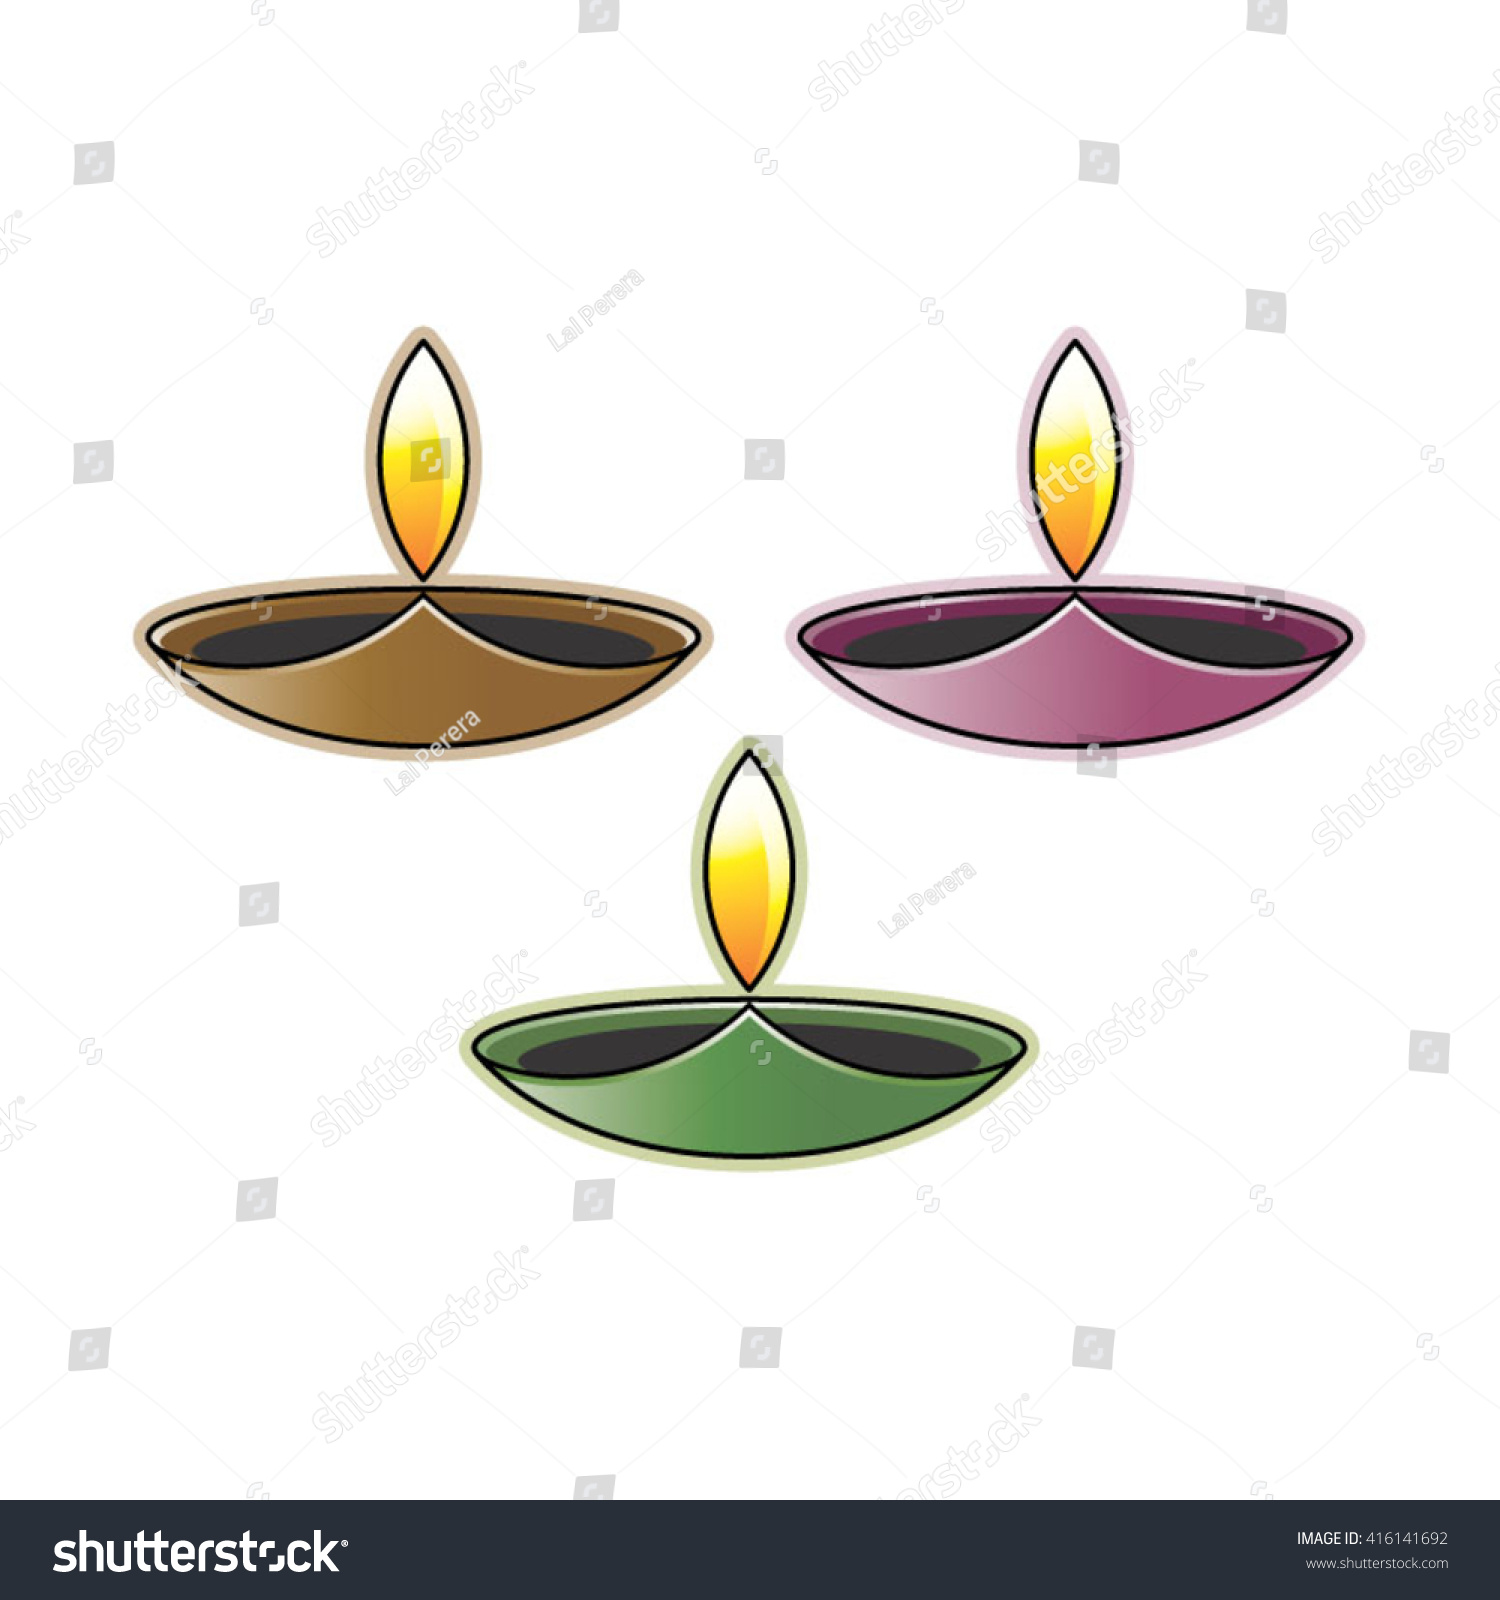 Oil Lamp Three Color Variations Vector Stock Vector 416141692 ... for Drawing Oil Lamp  183qdu